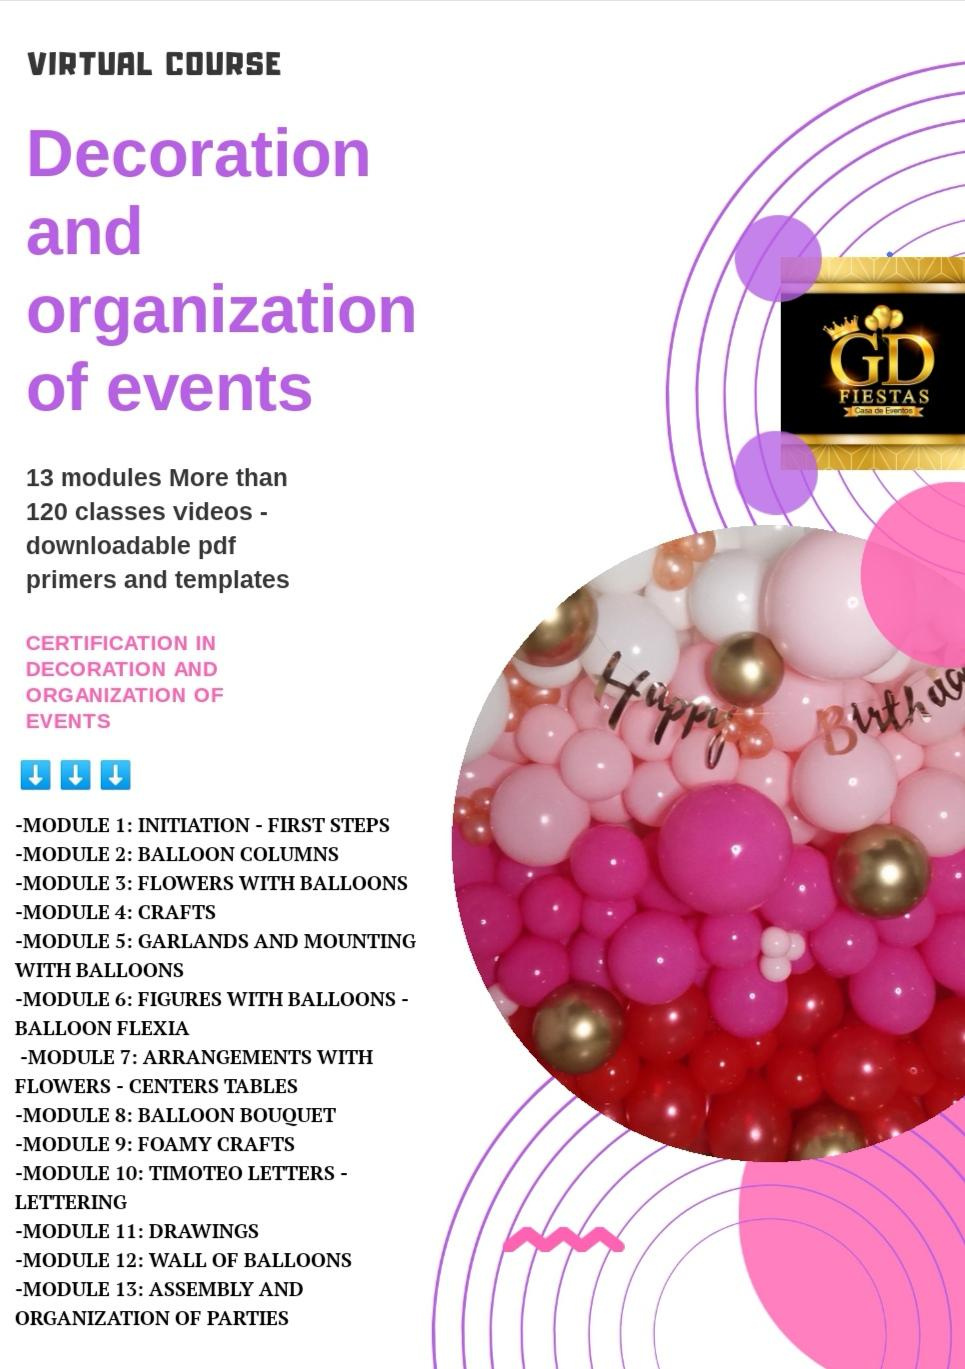 Virtual course decoration and organization of events